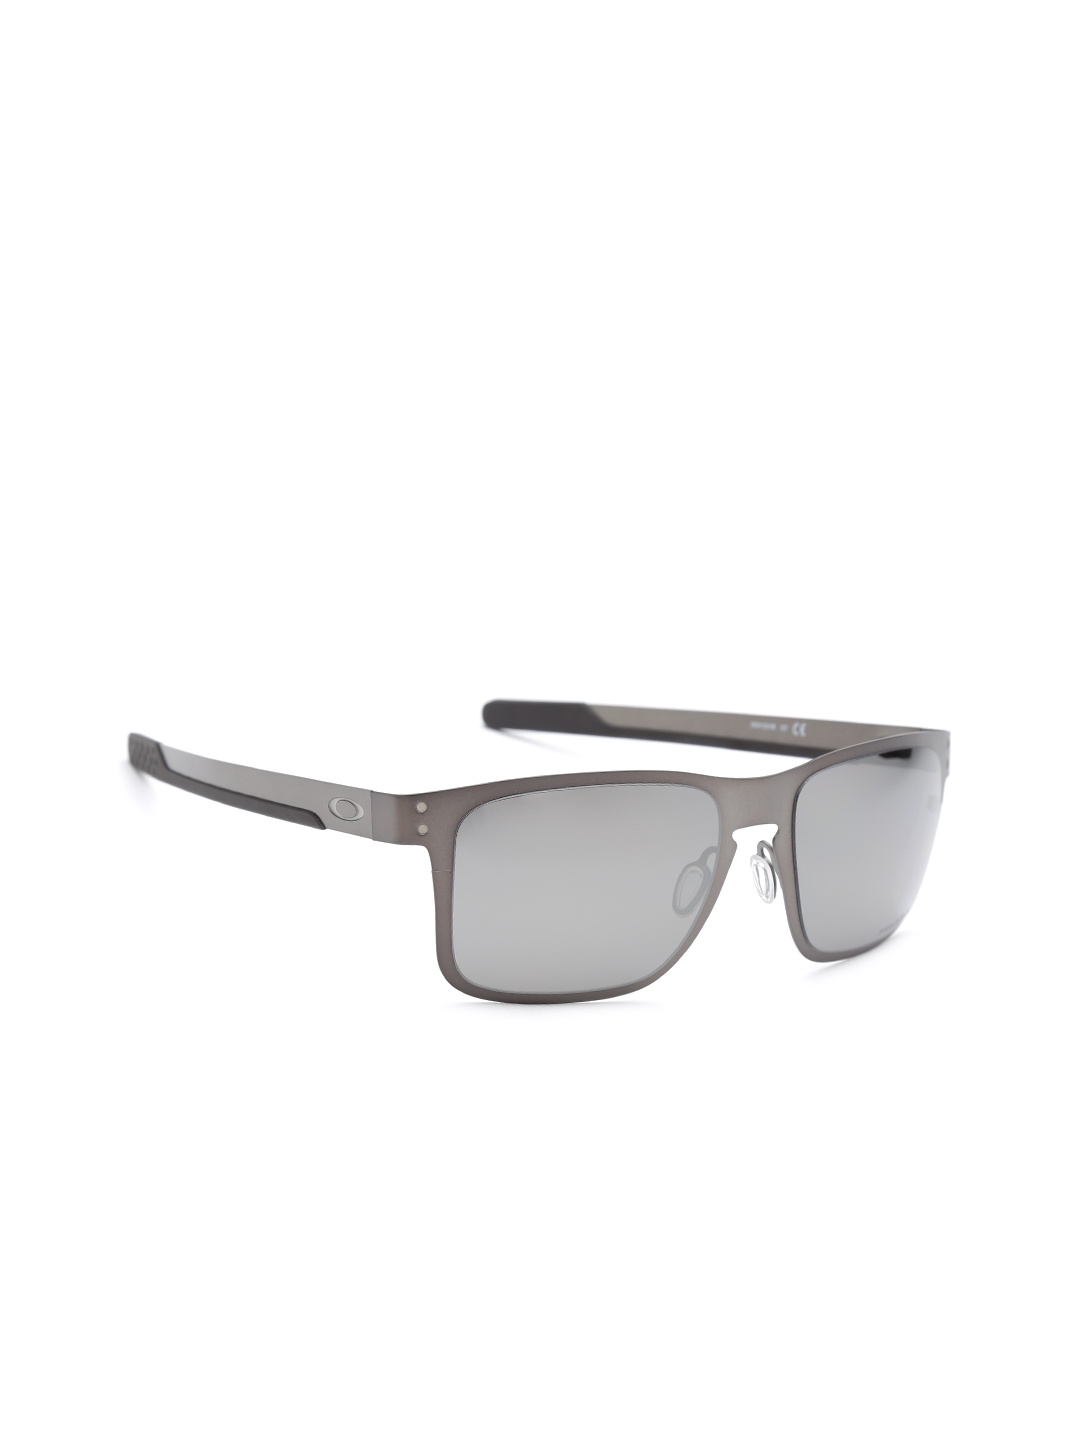 db9d2b183b Buy OAKLEY Men Polarised Mirrored Square Sunglasses 0OO412341230655 ...